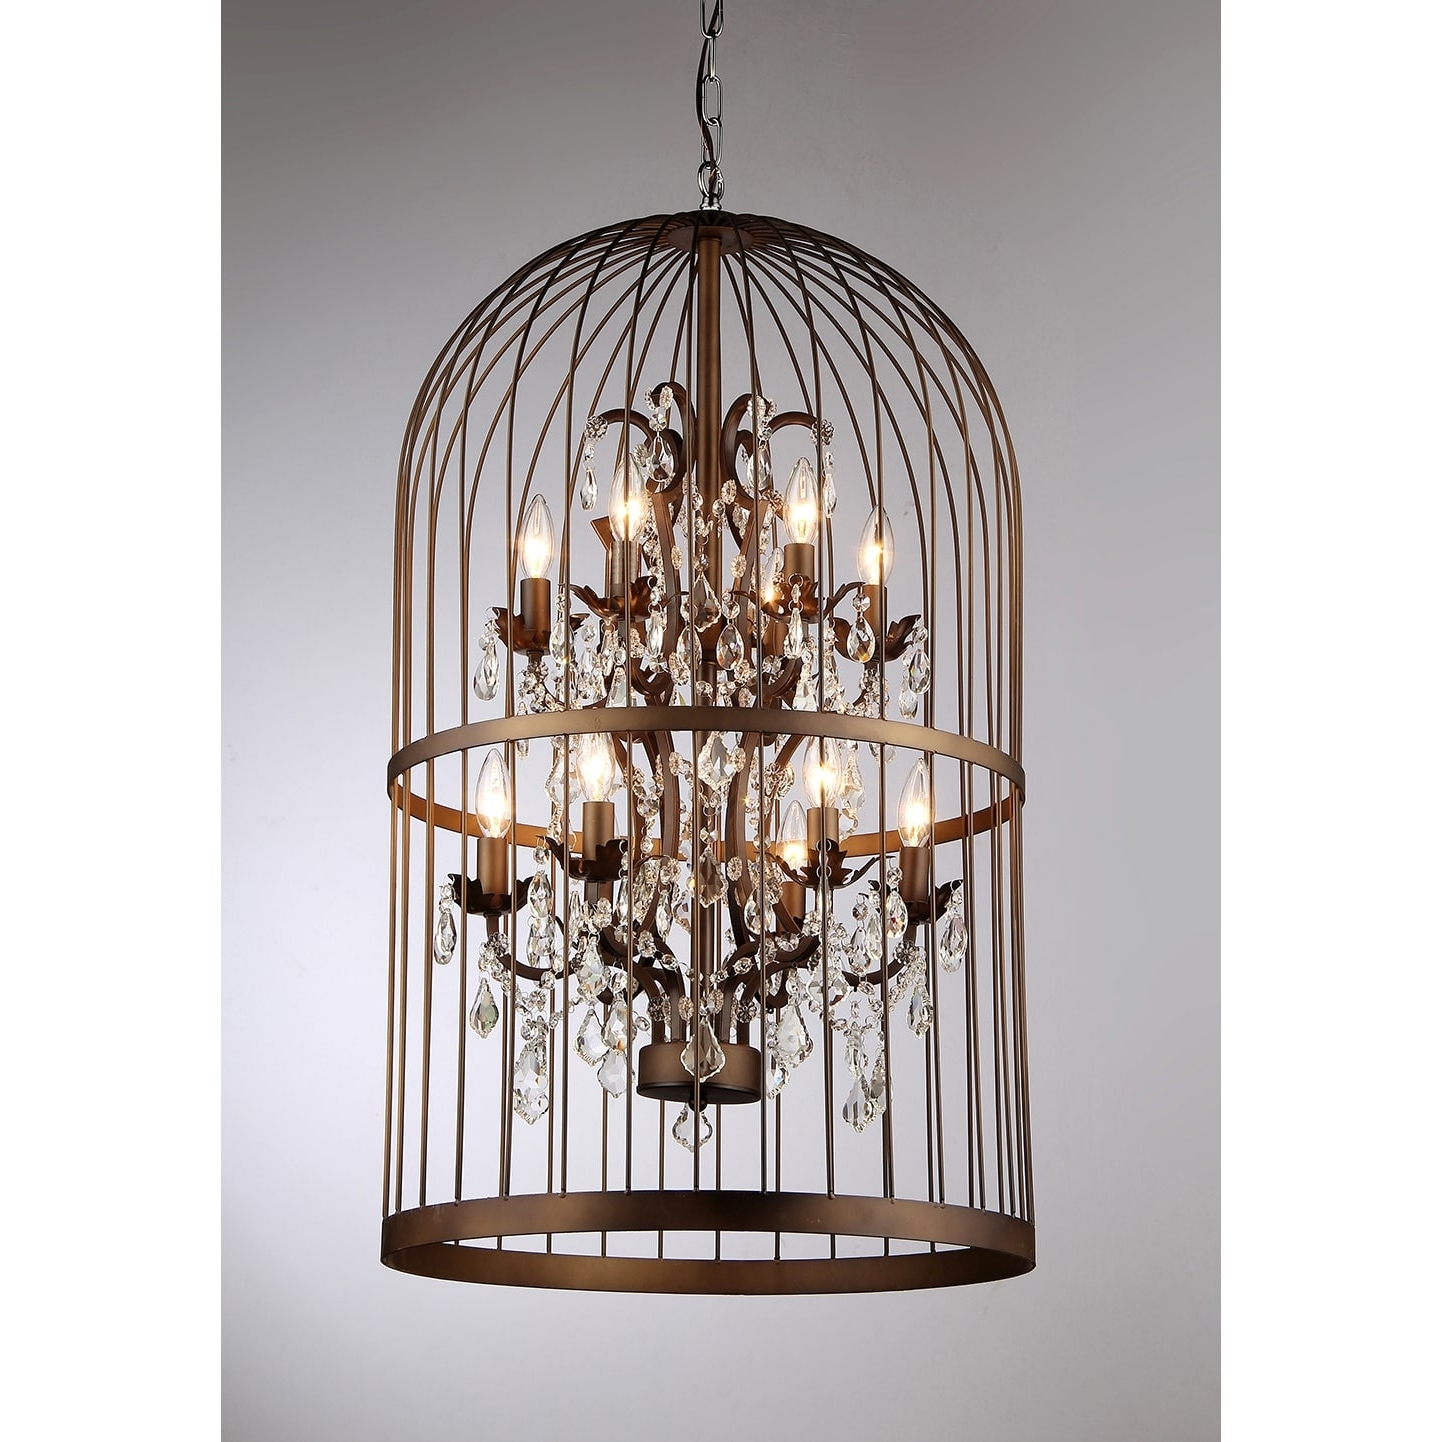 Preferred Caged Chandelier With Warehouse Of Tiffany Rinee Iii Cage Chandelier – Free Shipping Today (View 18 of 20)